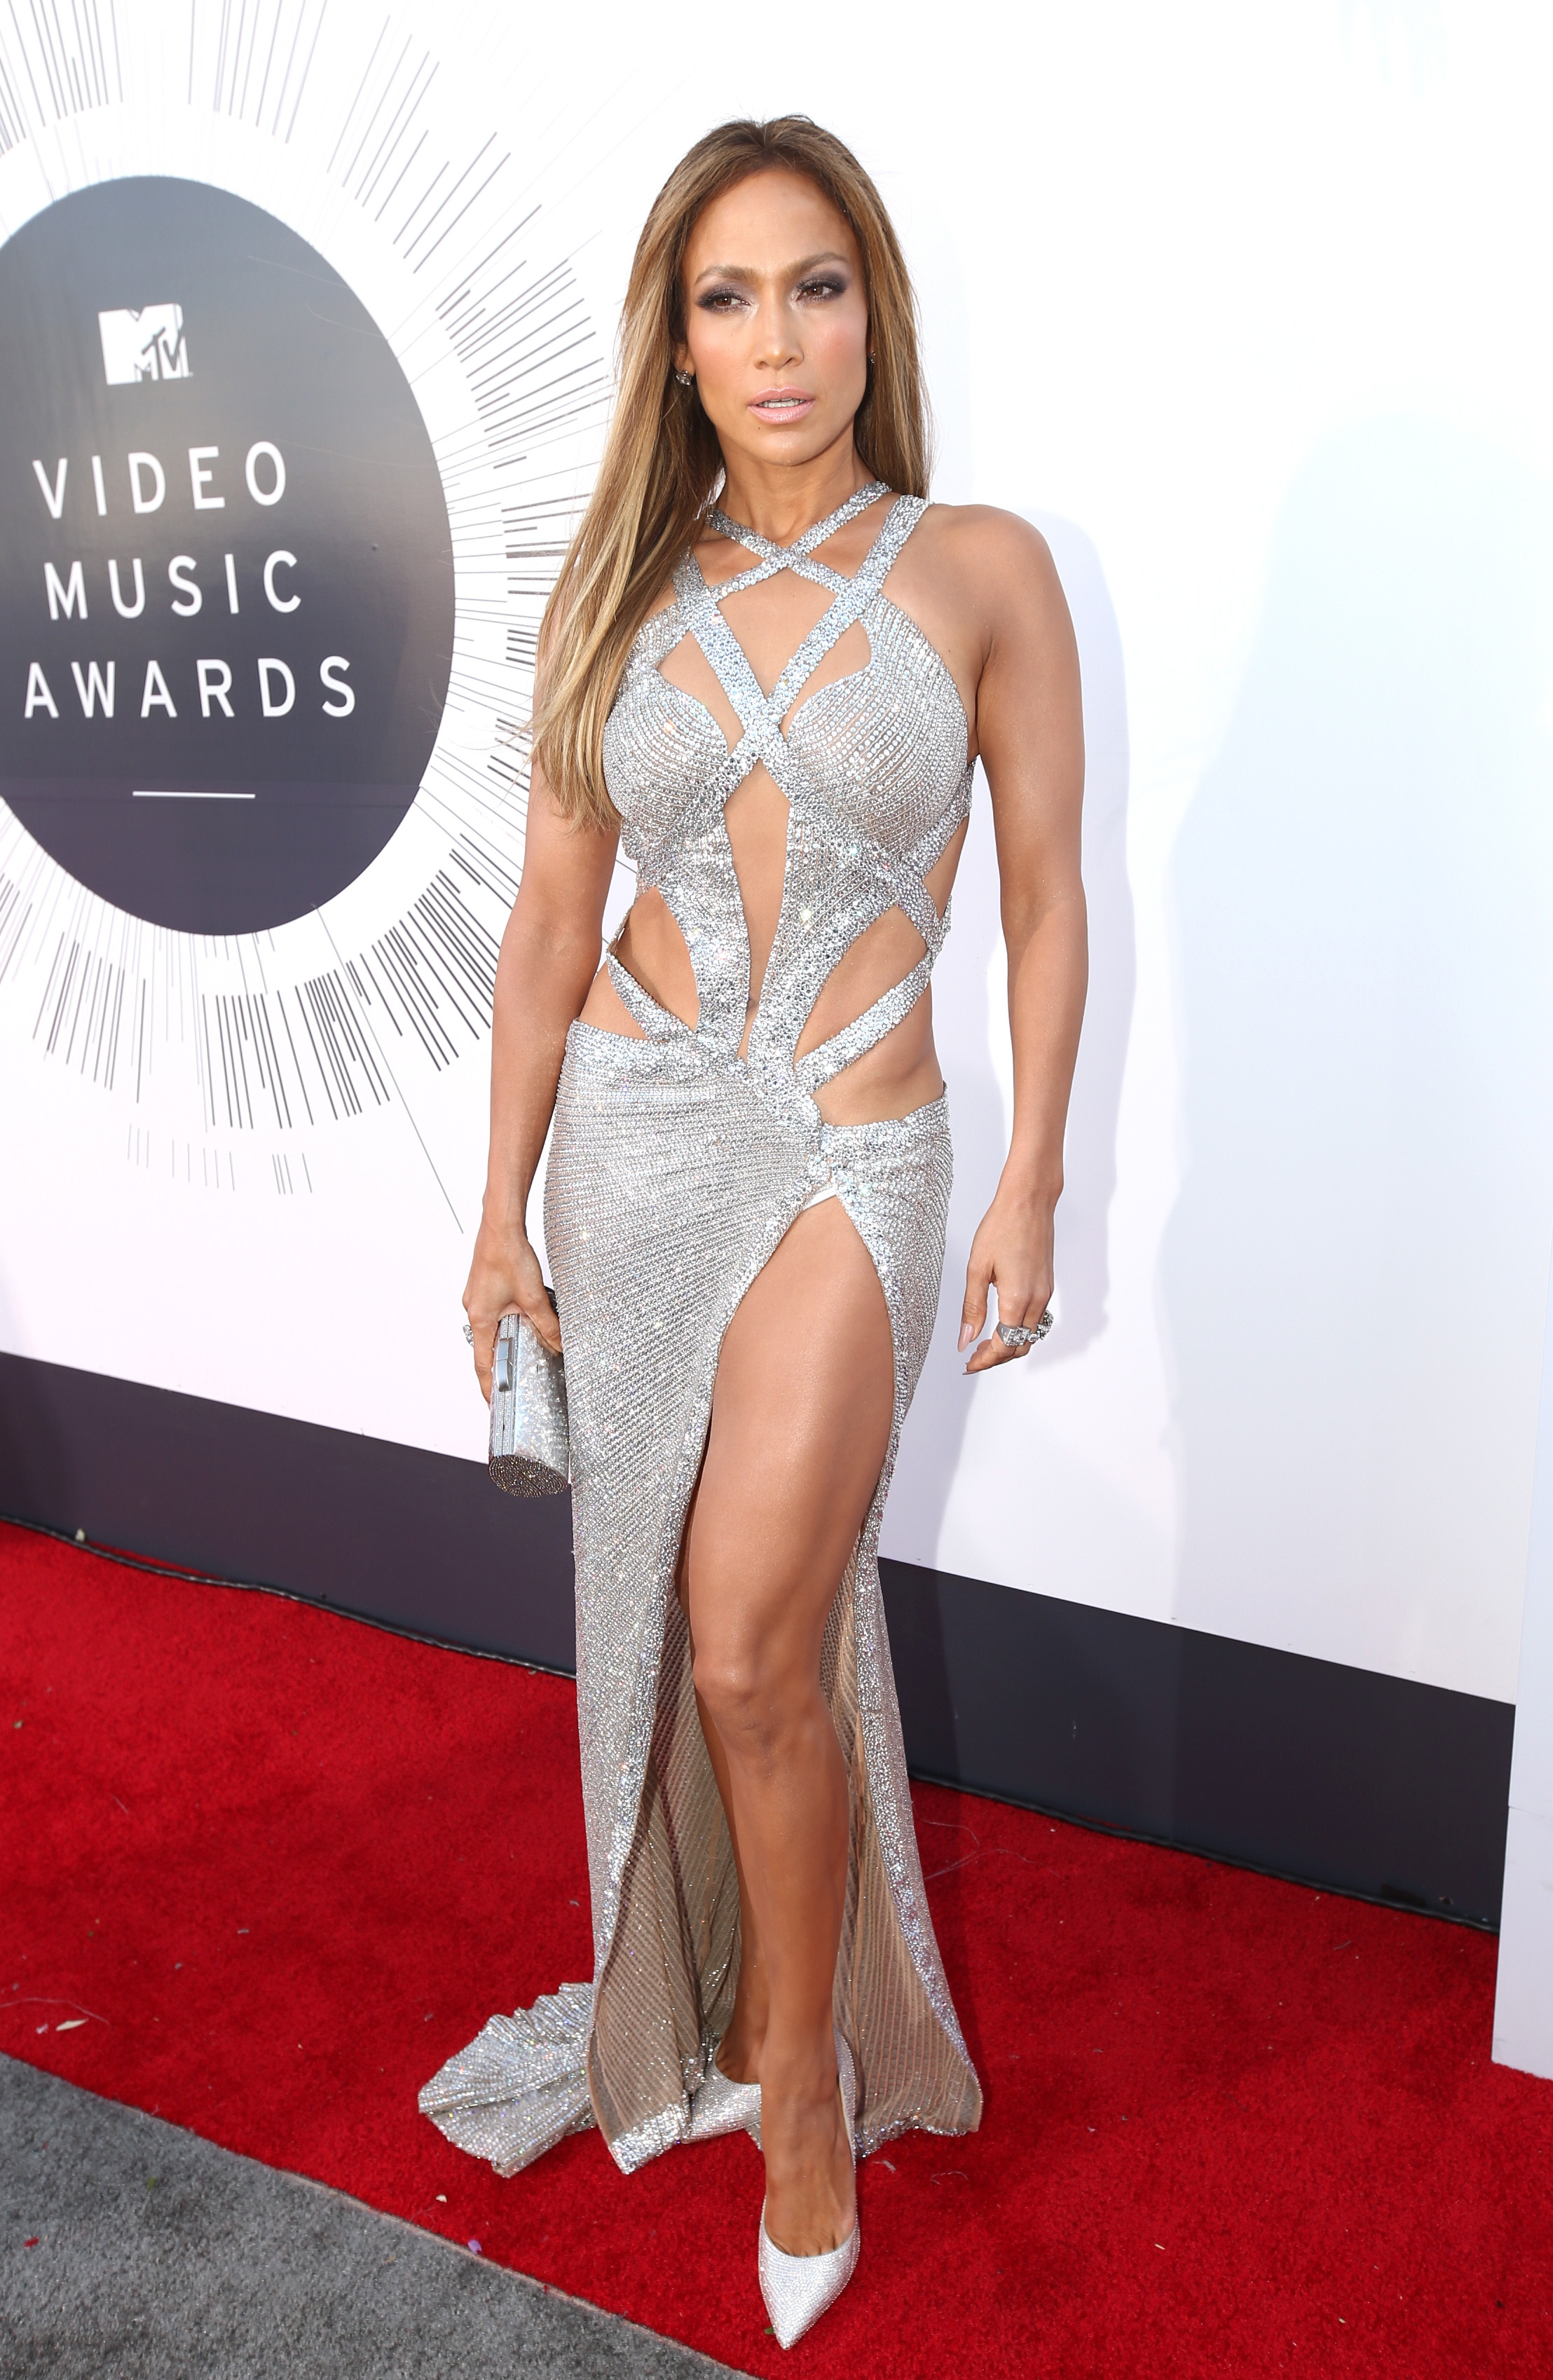 INGLEWOOD, CA - AUGUST 24: Actress/singer Jennifer Lopez attends the 2014 MTV Video Music Awards at The Forum on August 24, 2014 in Inglewood, California. (Photo by Christopher Polk/Getty Images for MTV)